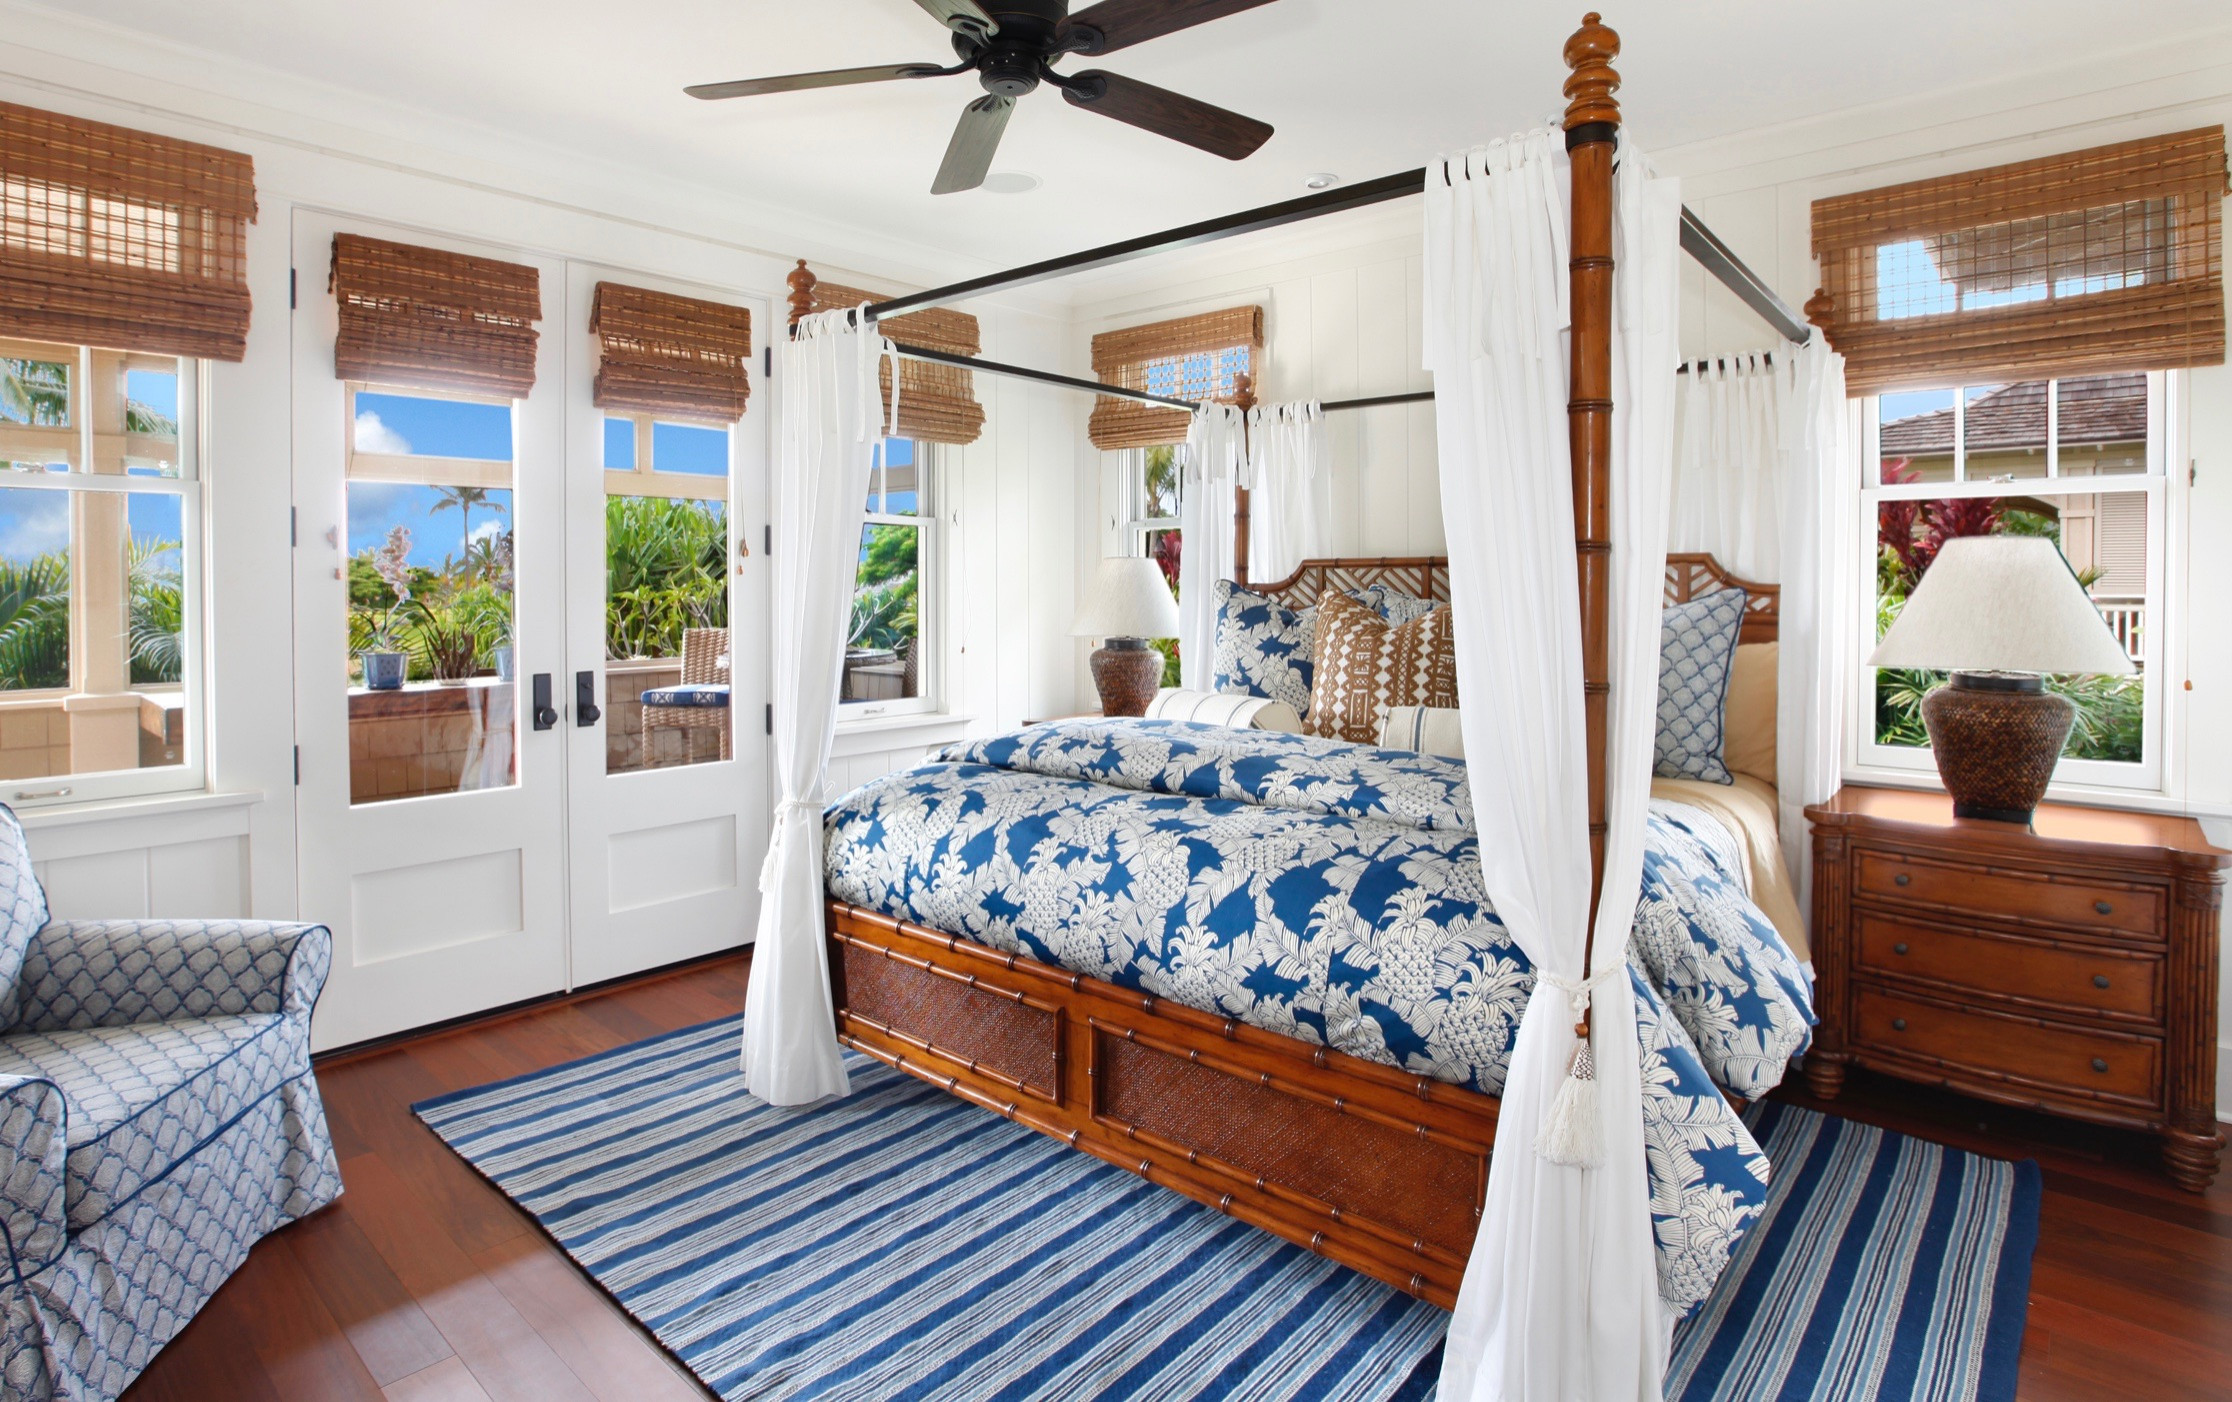 14 Beautiful Tropical Bedroom Pictures & Ideas - July, 14  Houzz